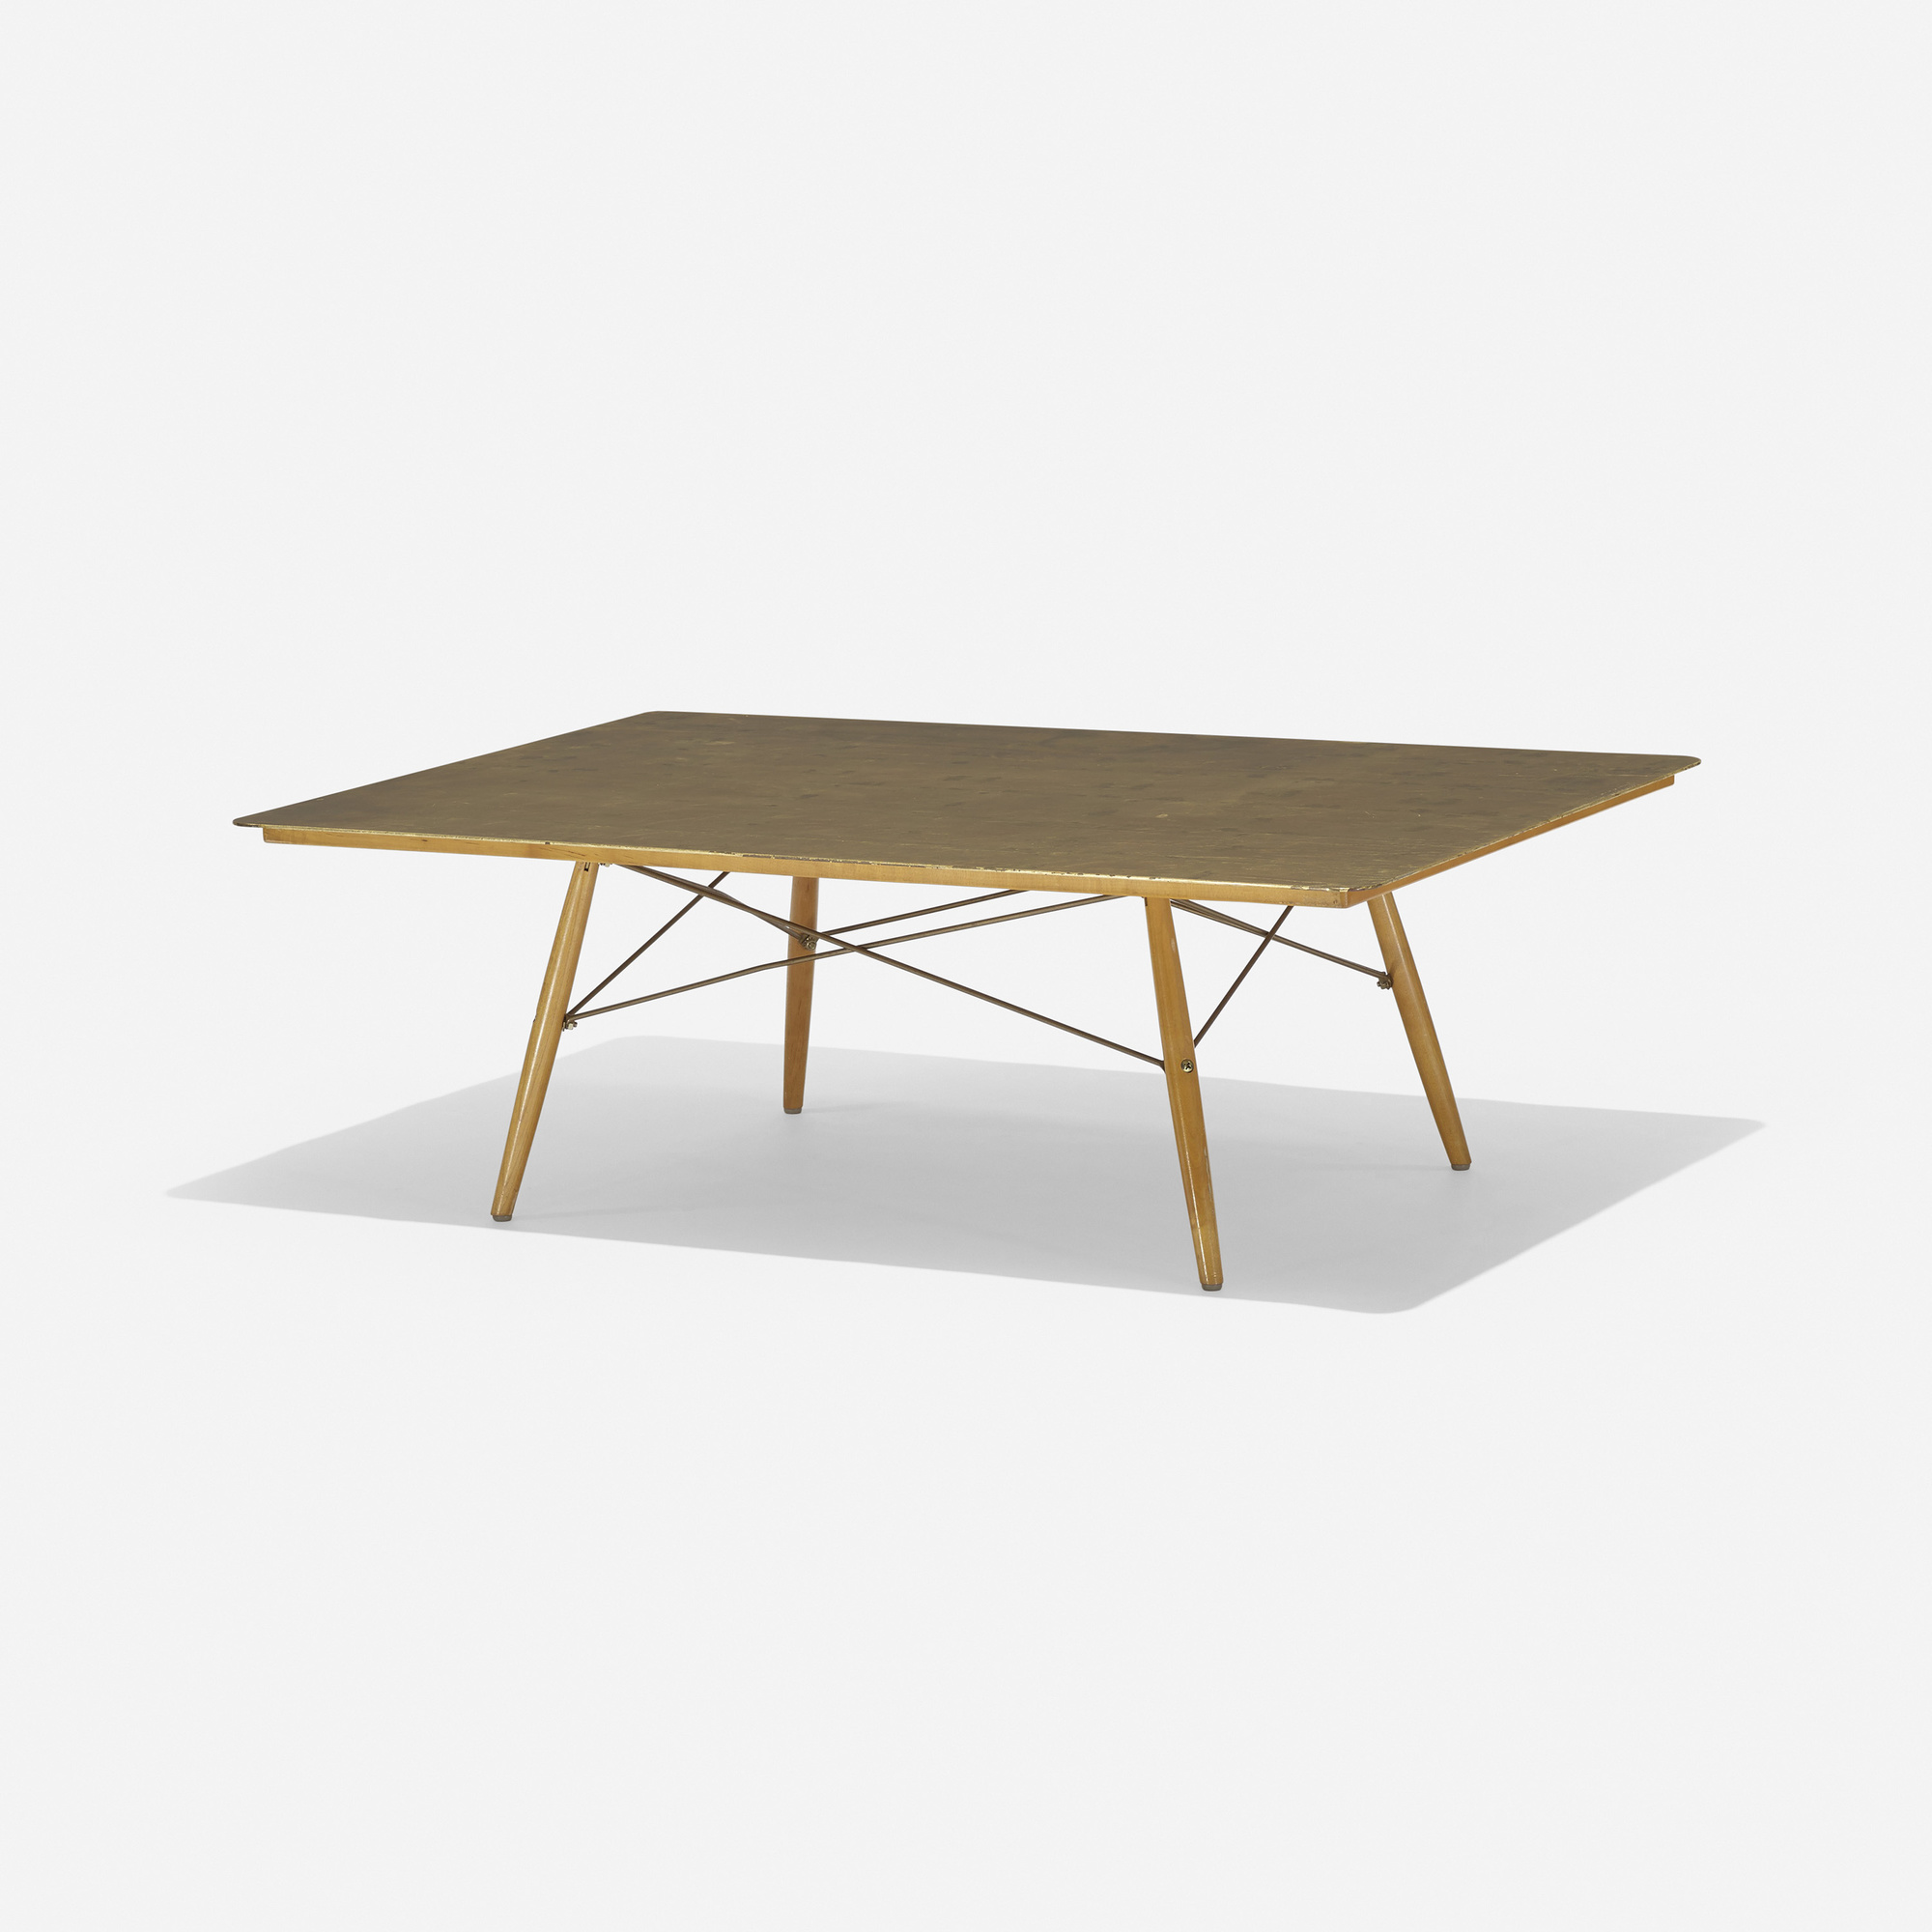 135: Charles And Ray Eames / 50th Anniversary Coffee Table (1 Of 3)